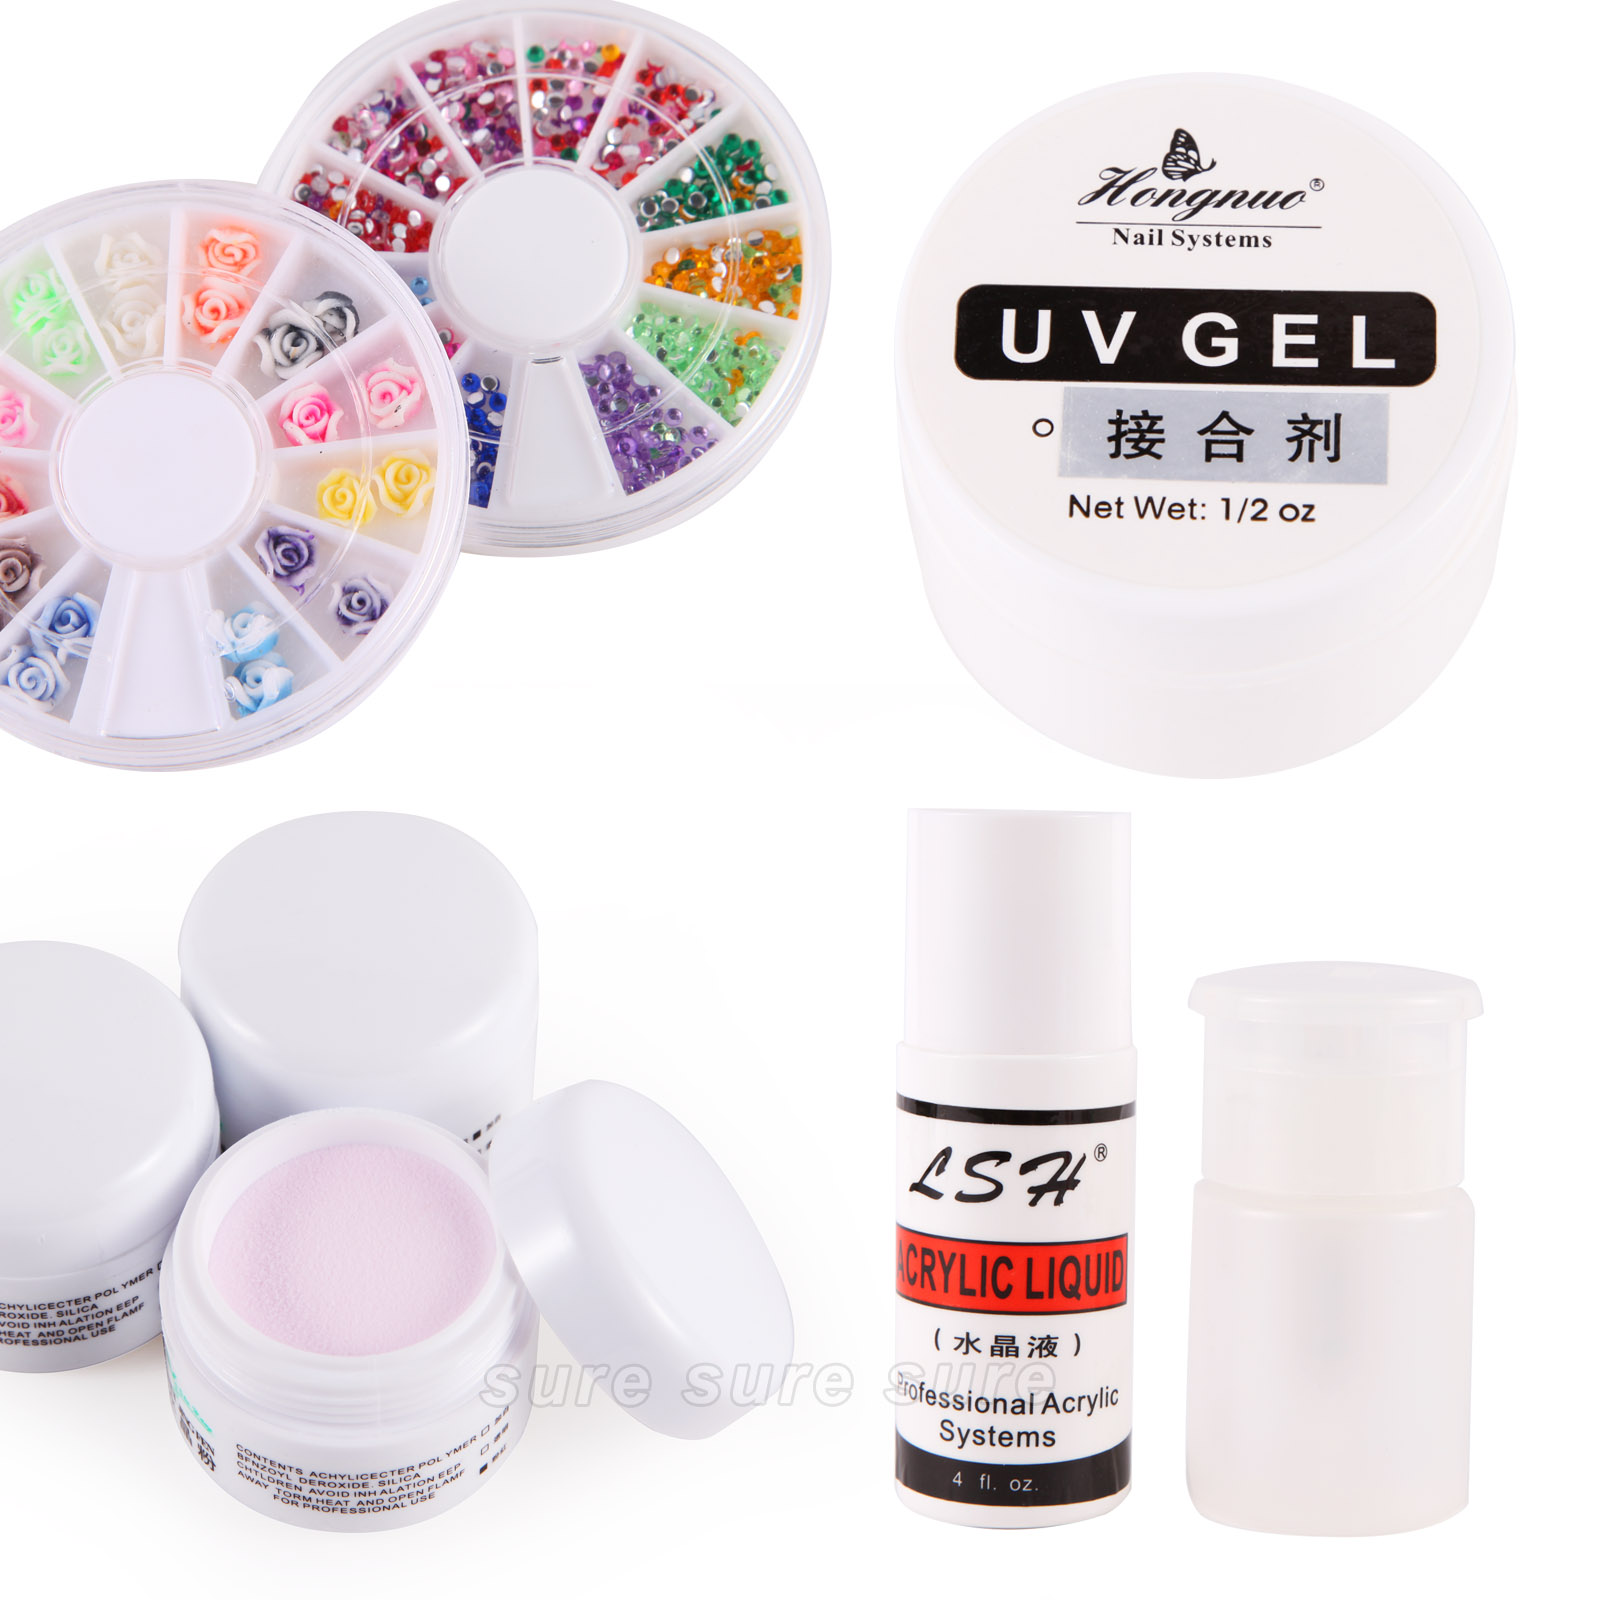 kit manucure uv gel dessin ongles acrylique poudre resine liquide d coration ebay. Black Bedroom Furniture Sets. Home Design Ideas